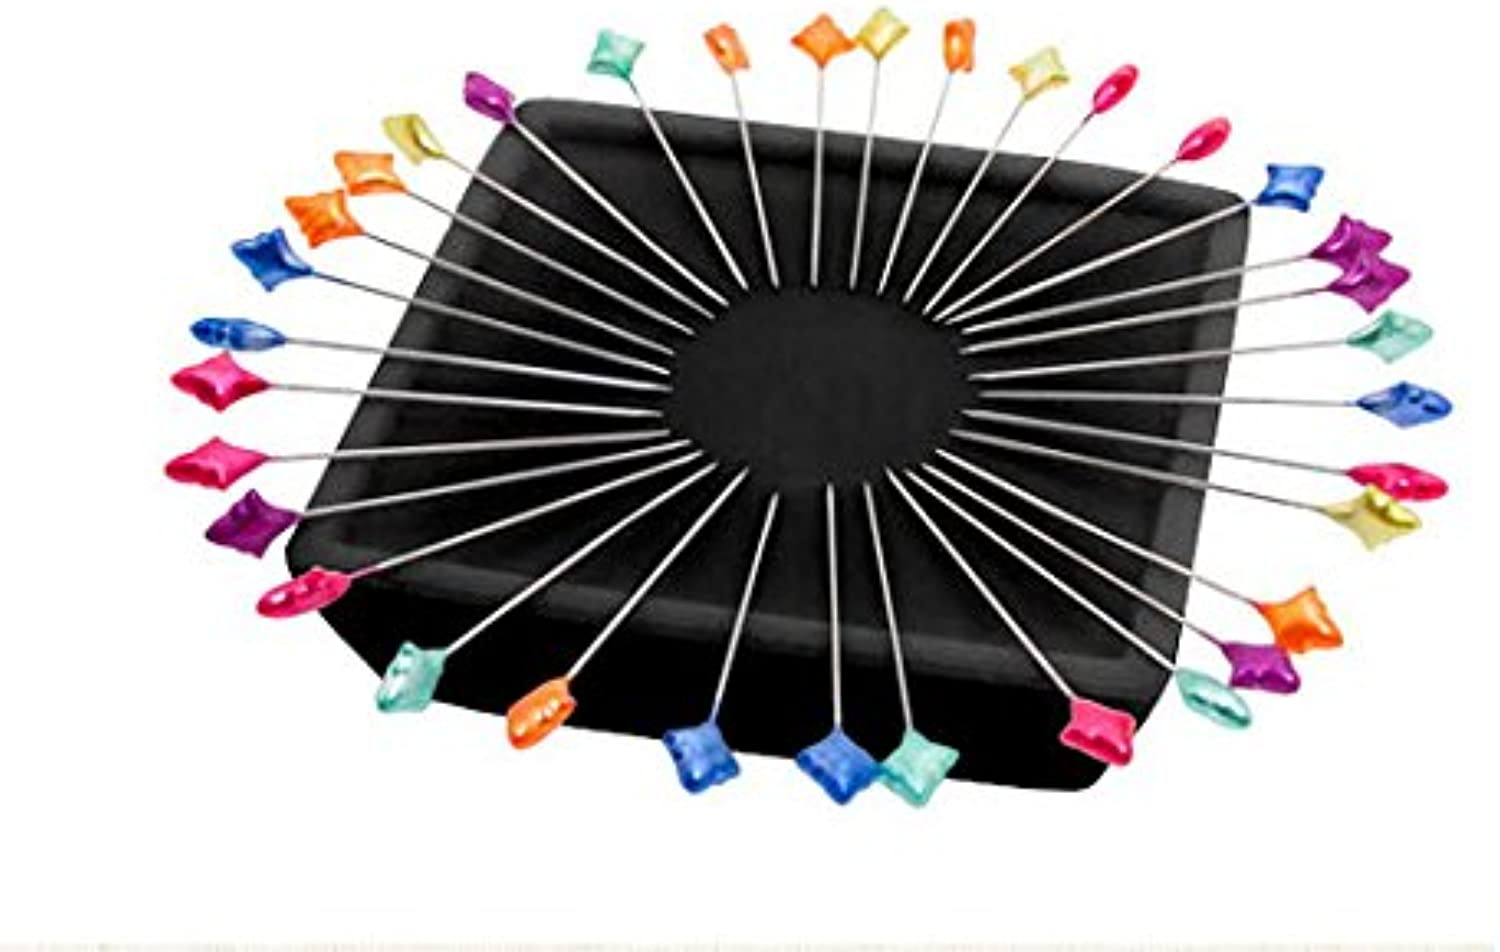 Zirkel Magnetic Pin Cushion  100 Splendid Spear Pins Included  Patty Young  Organise Pins  Paper Weight